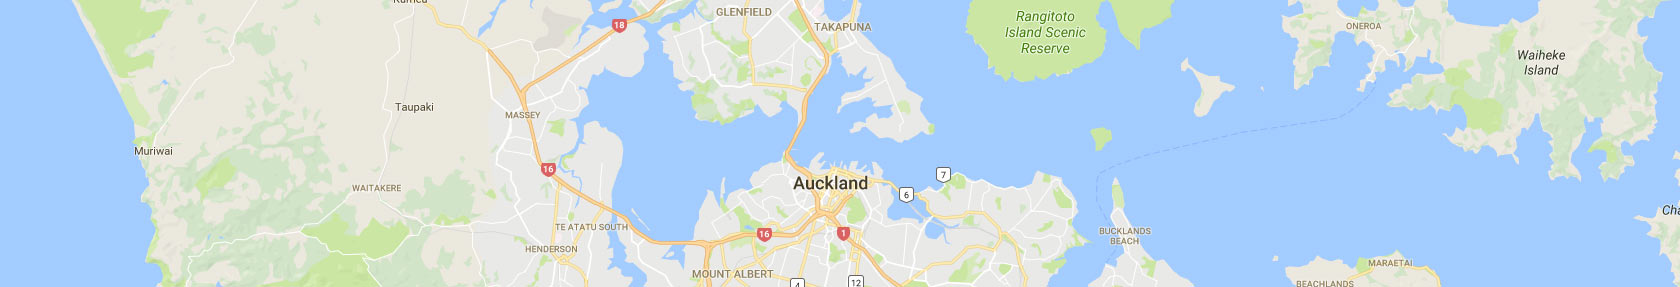 Map - Electricians Auckland Wide